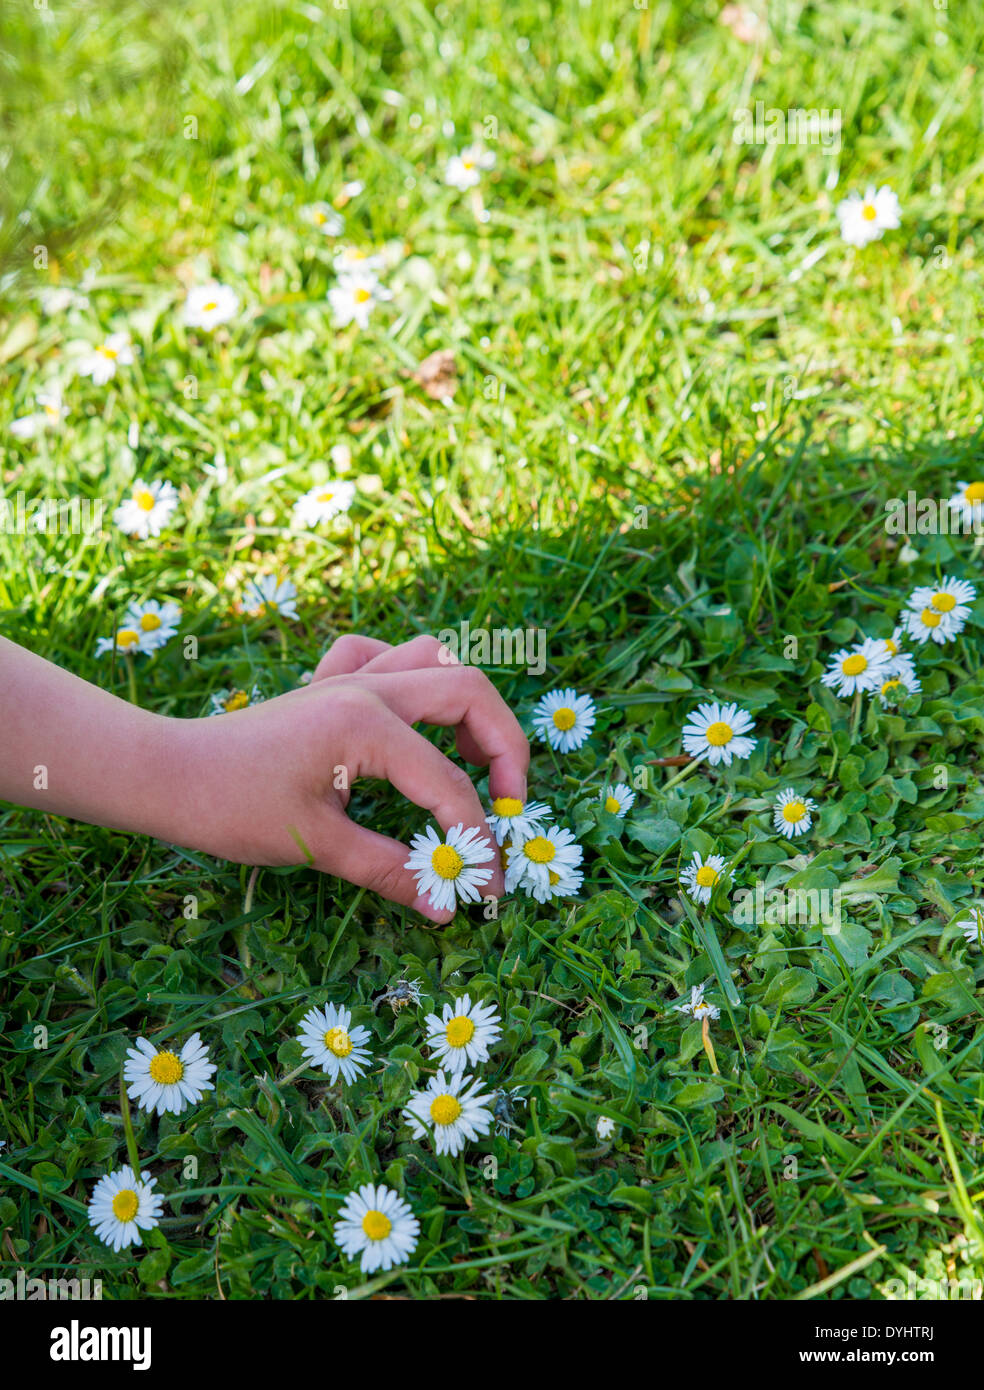 Human Hand, Flower, Single Flower, Recovery, Inside Of, Sharing, Alternative Medicine, Holding, Daisy, Spirituality, Care, Gift, - Stock Image